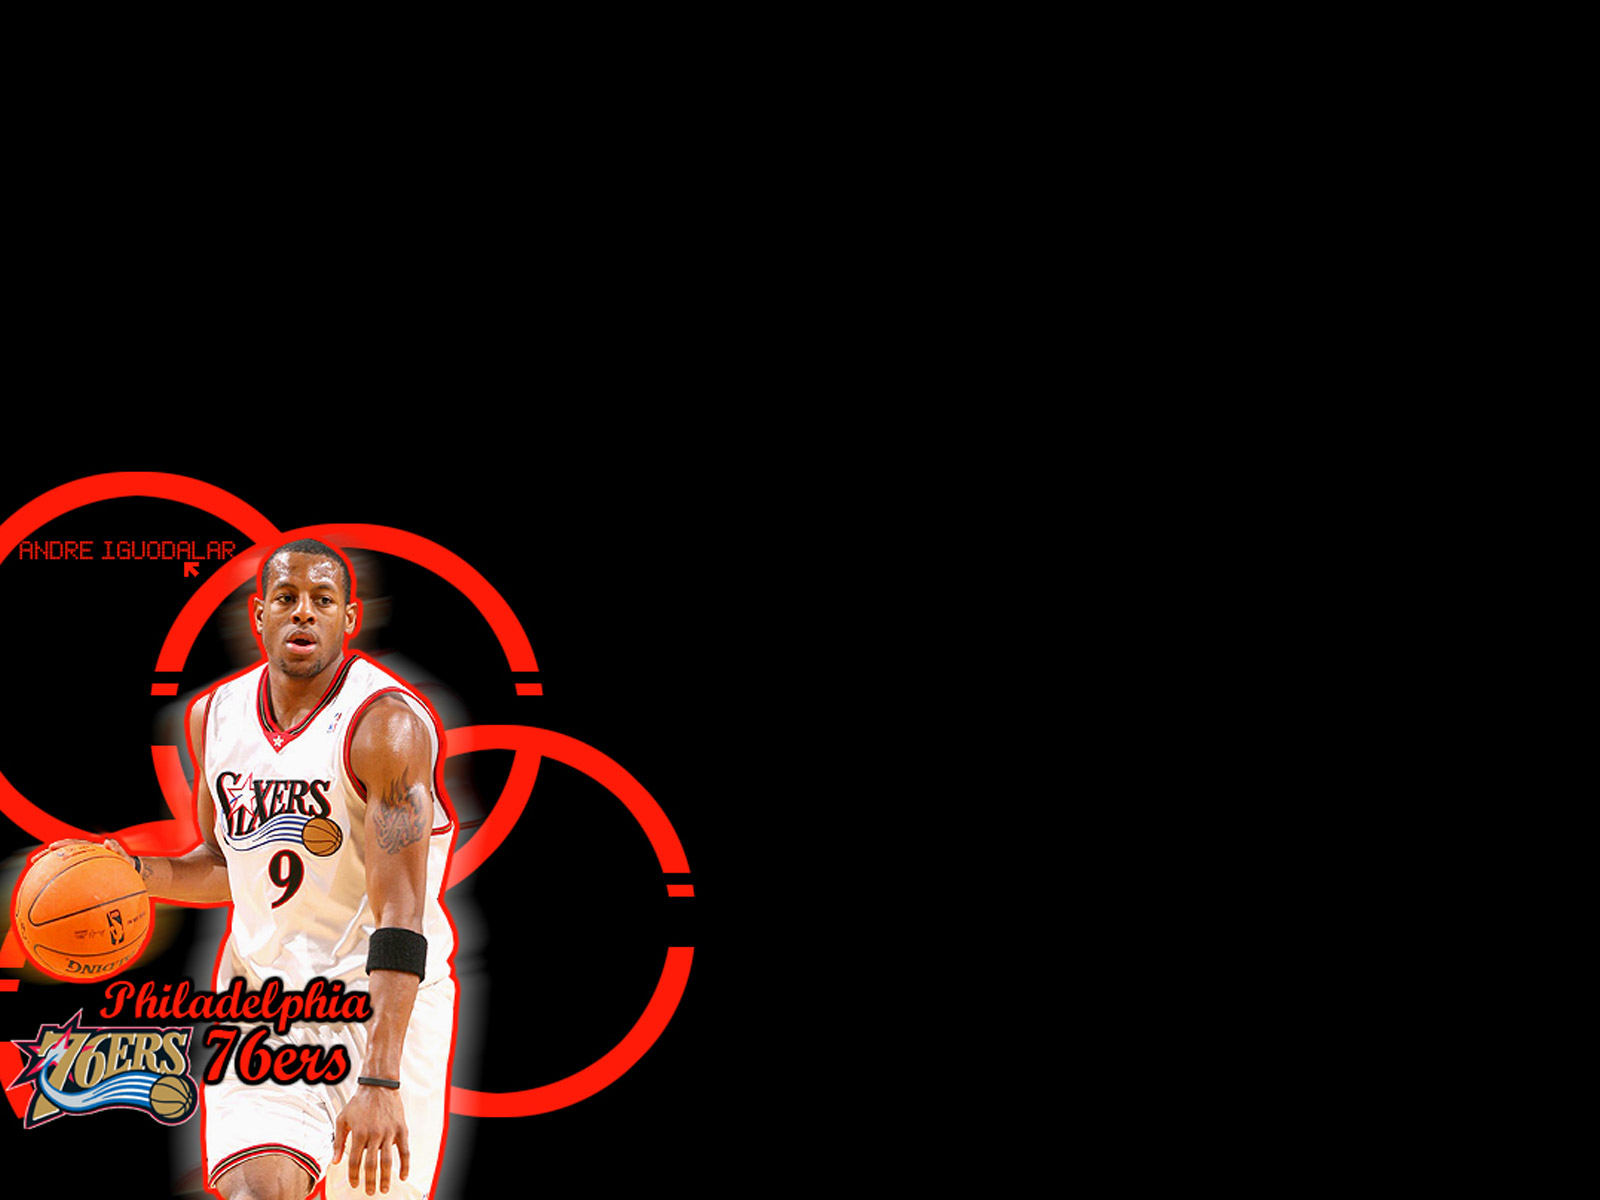 basketball wallpapers basketball wallpaper basketball background 33 1600x1200